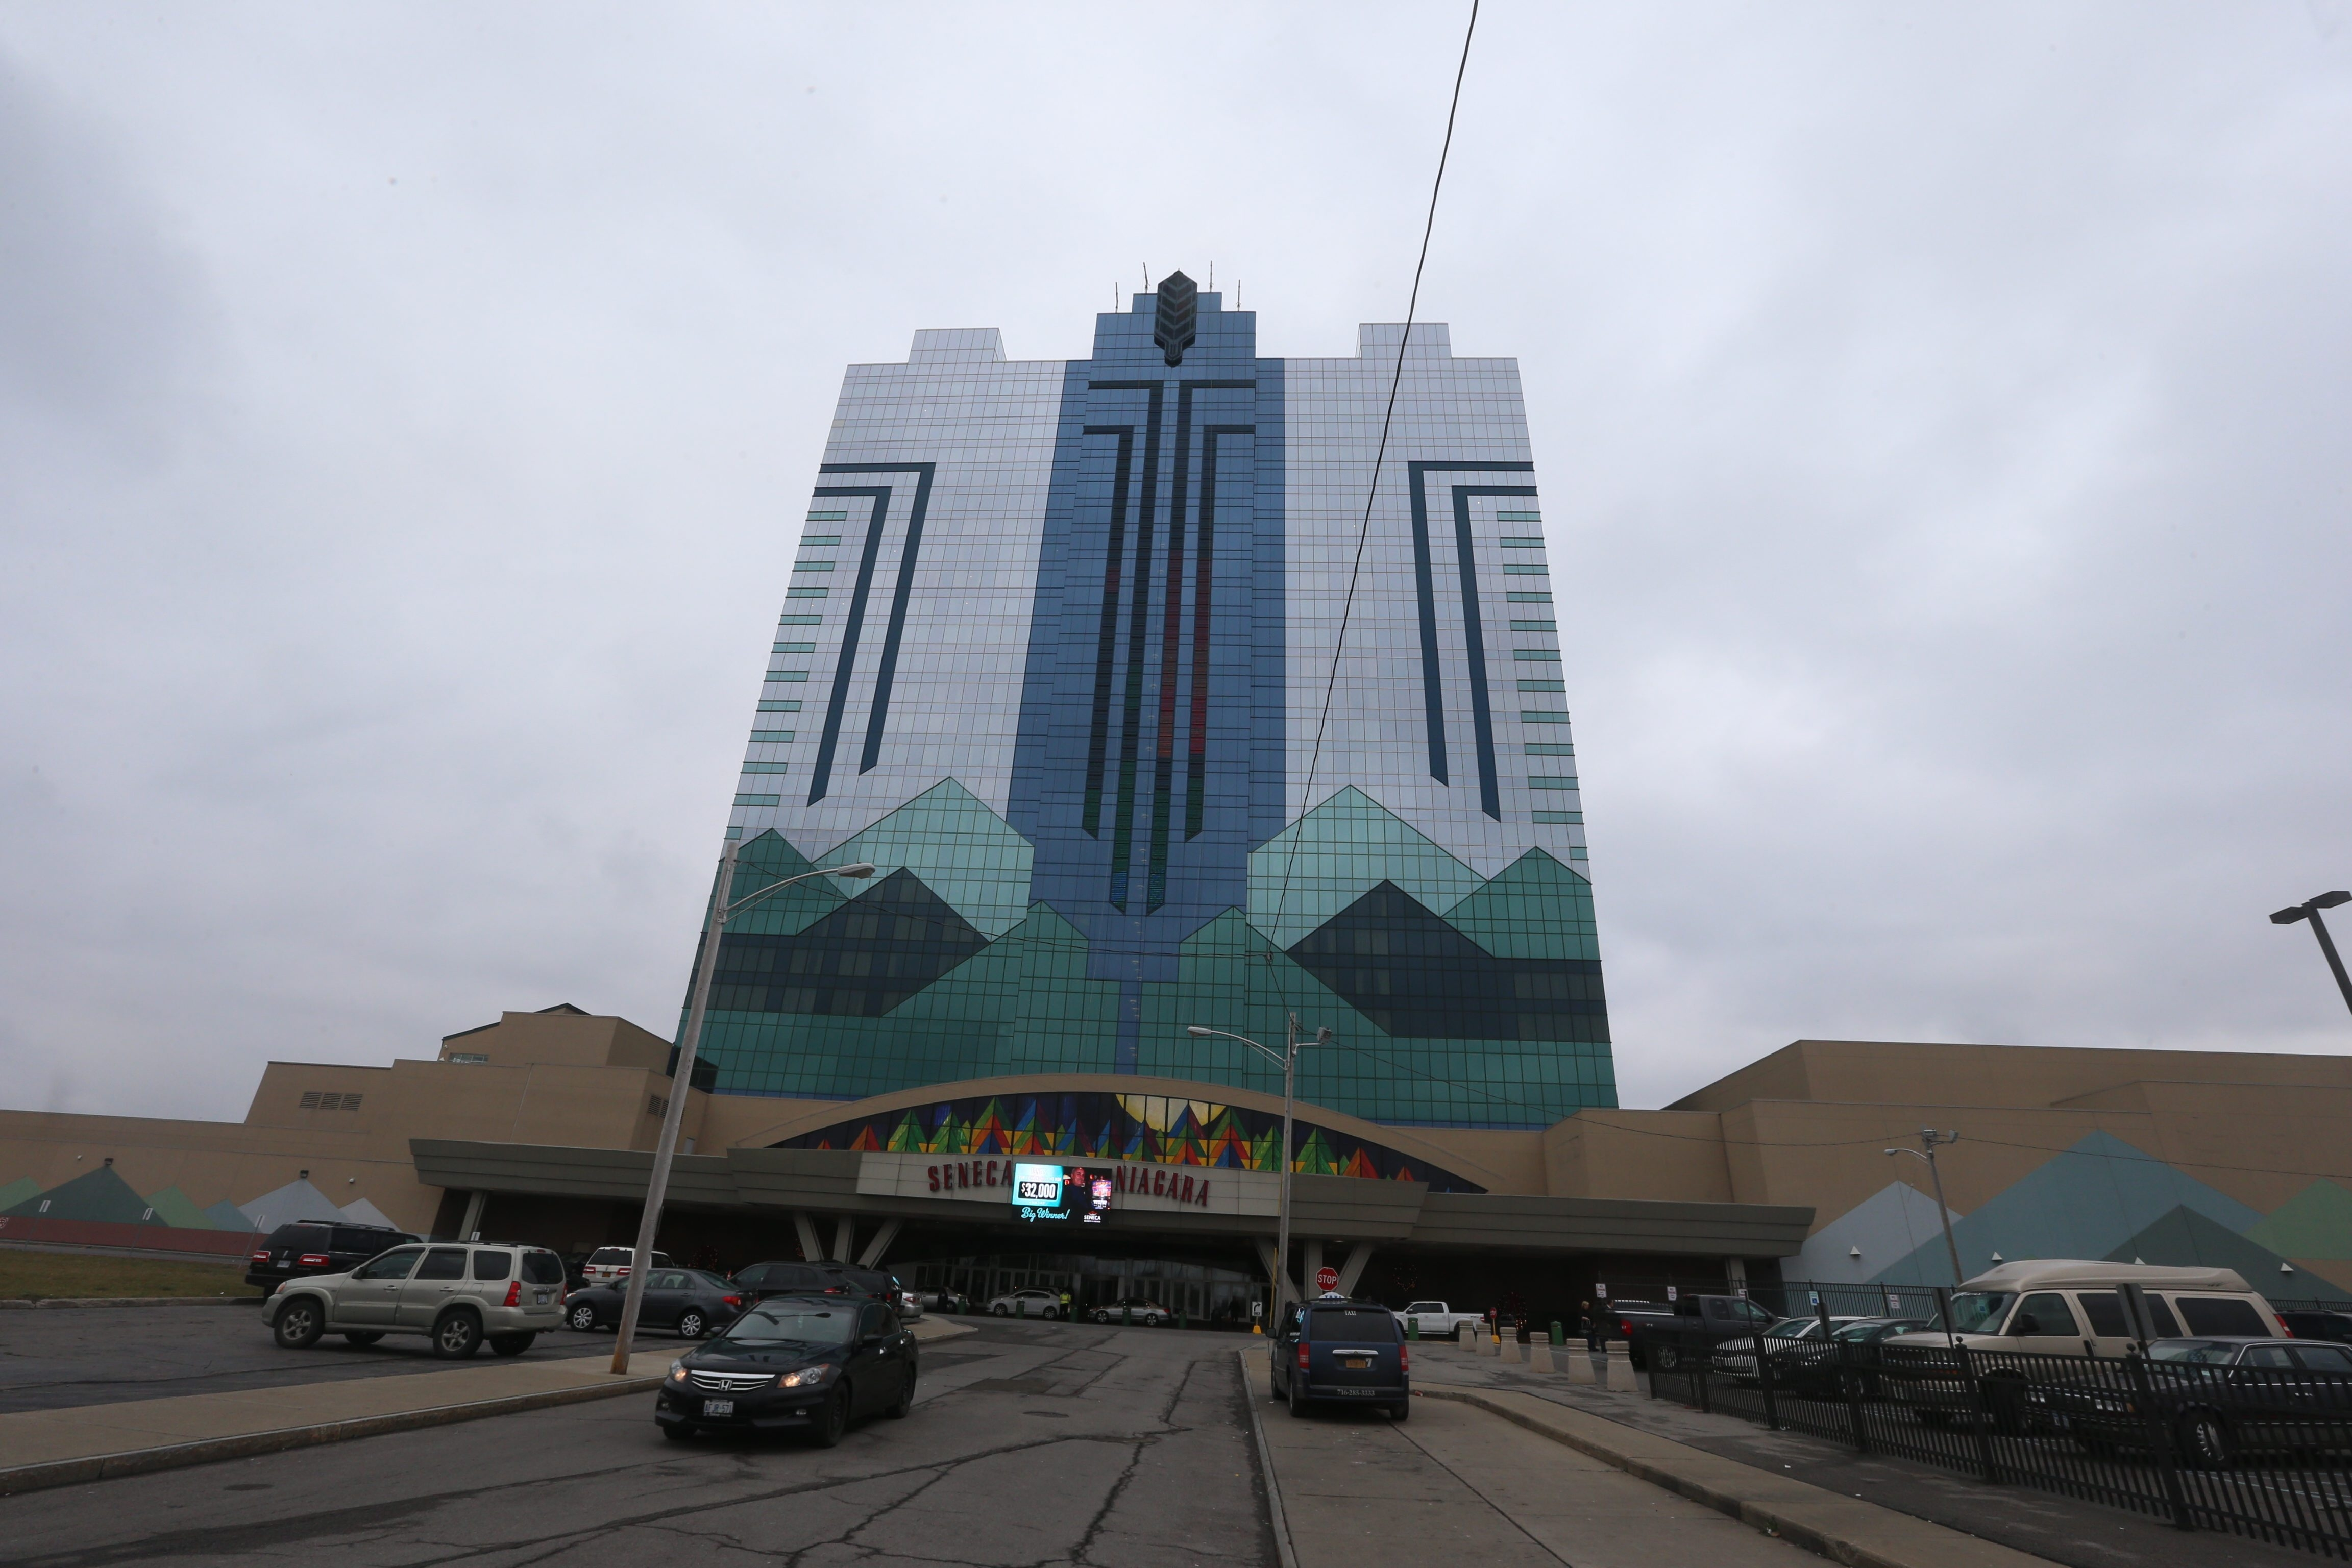 Casino niagara location pros gambling society